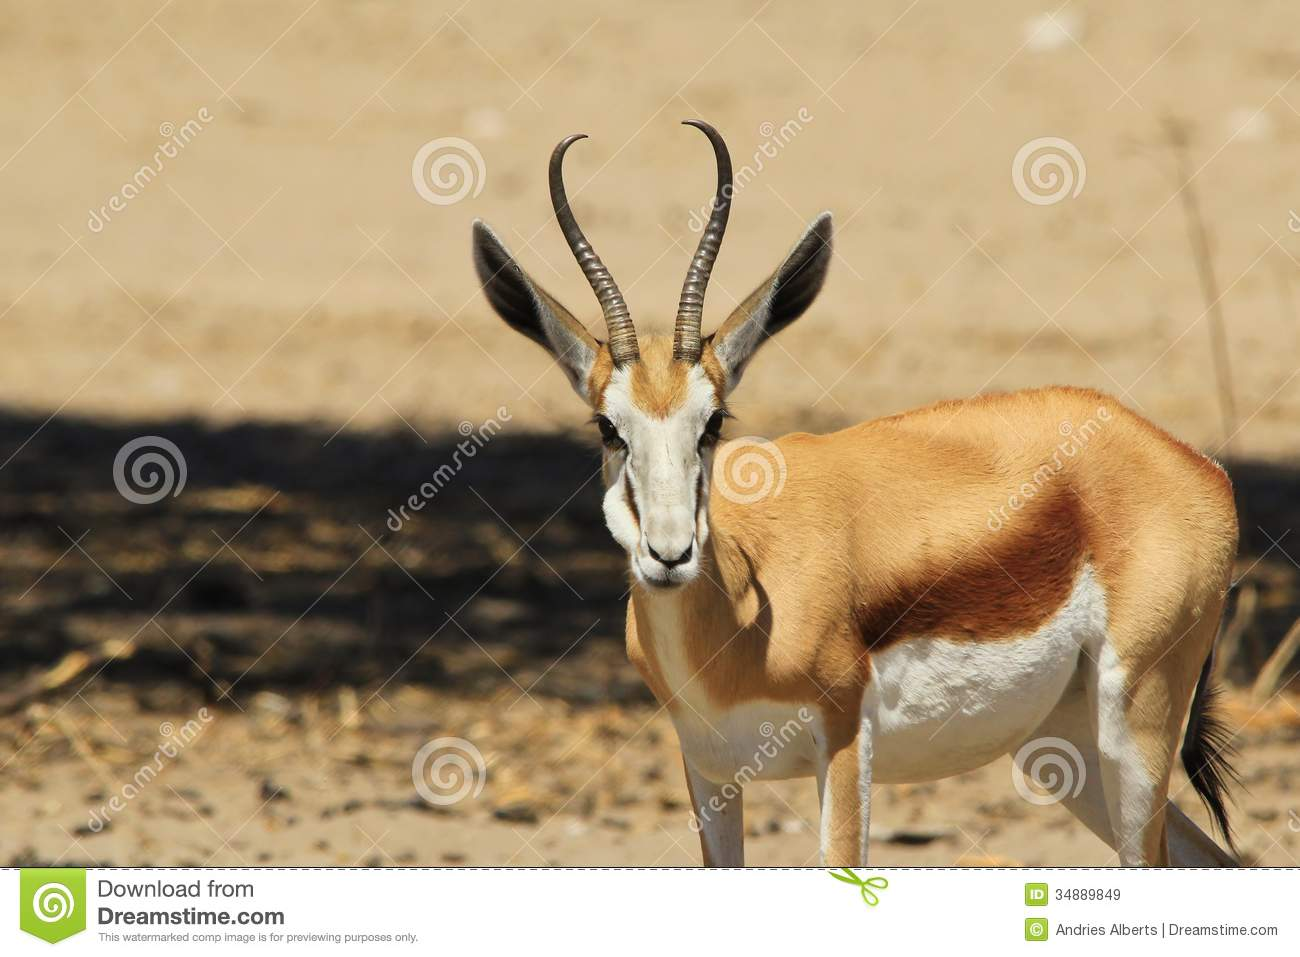 clipart springbok - photo #34